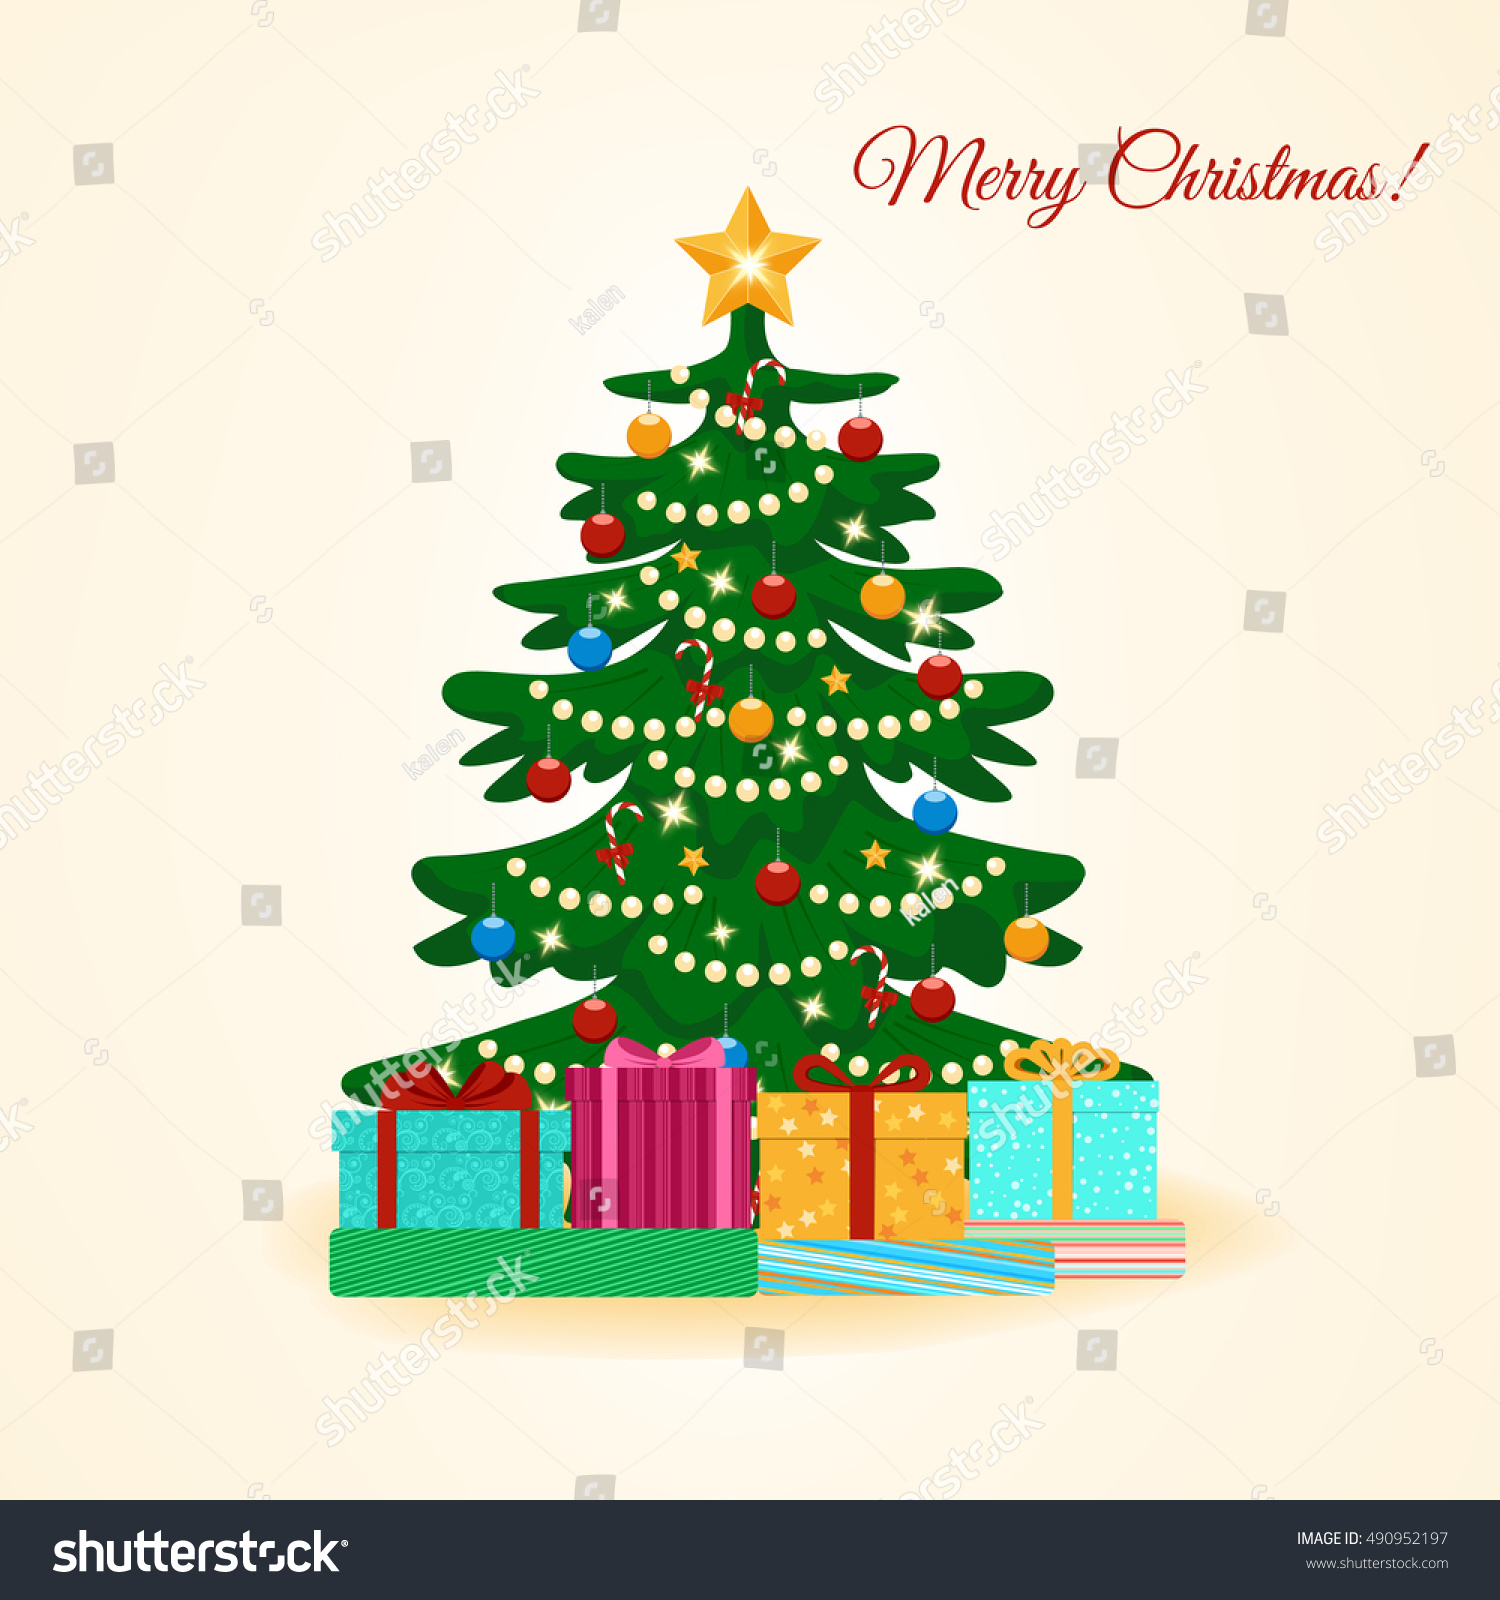 Vector Illustration Decorated Christmas Tree Colorful Stock Vector ...